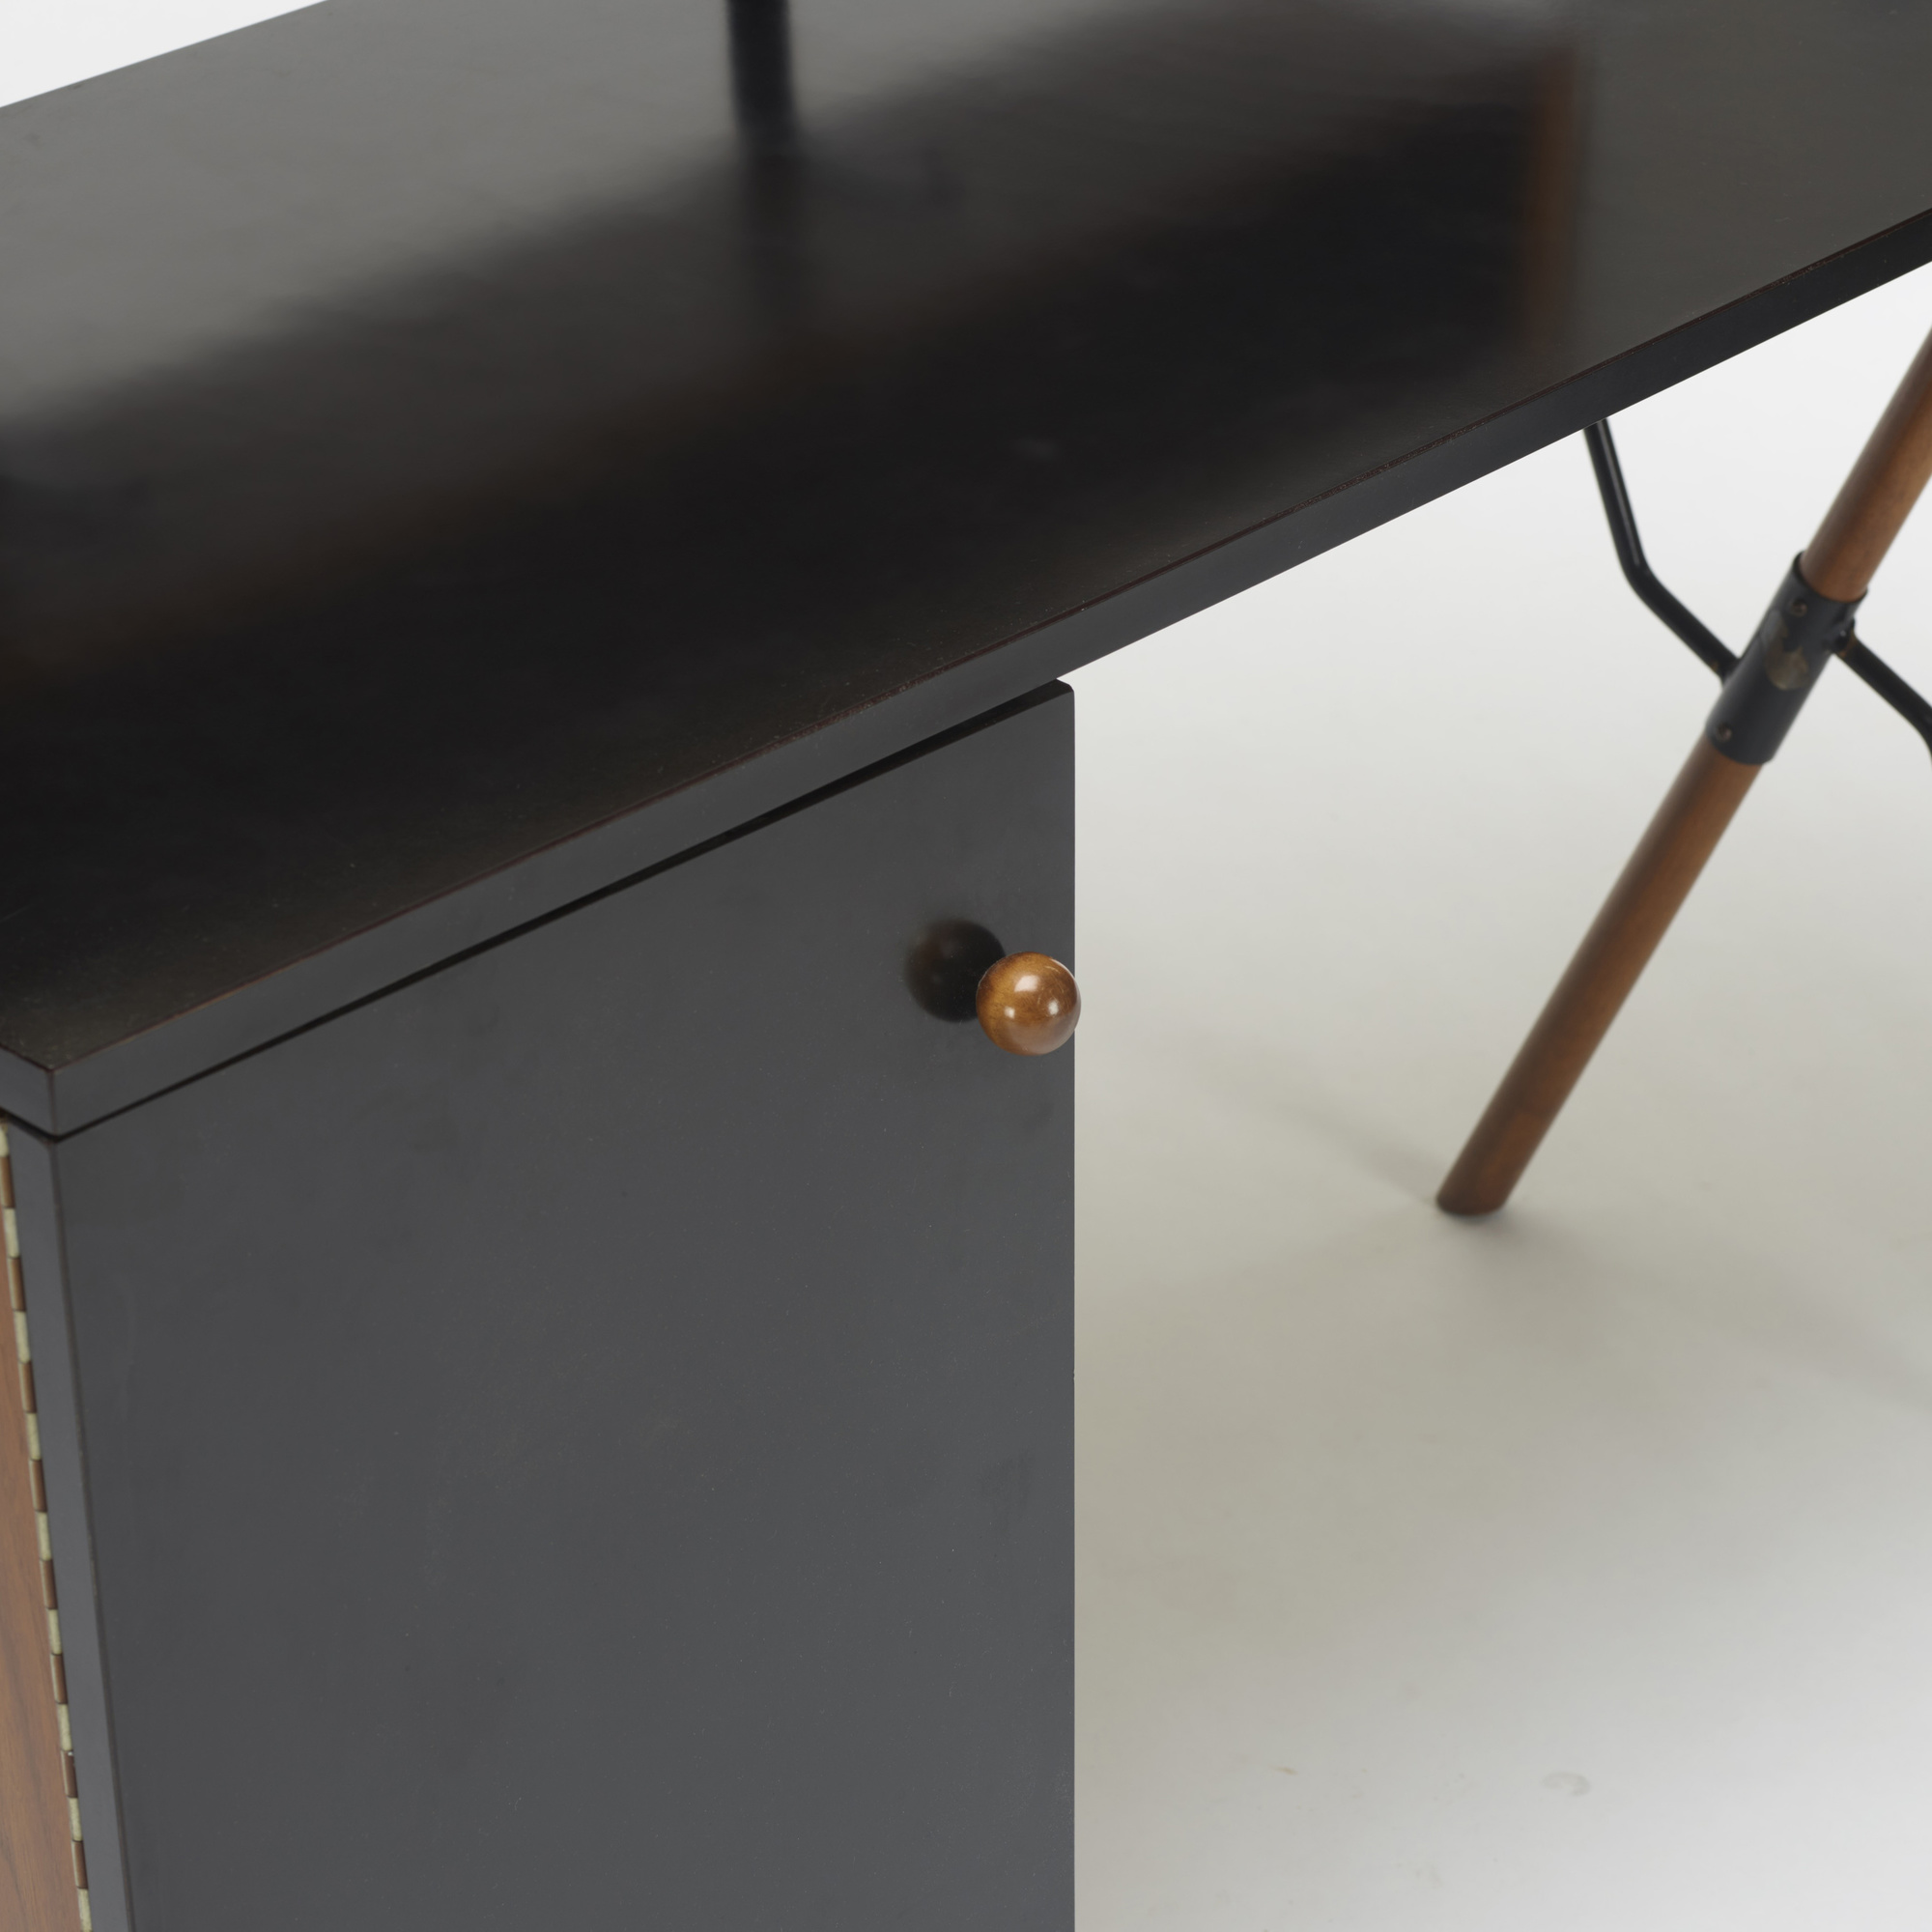 191: Greta Magnusson Grossman / desk (2 of 2)